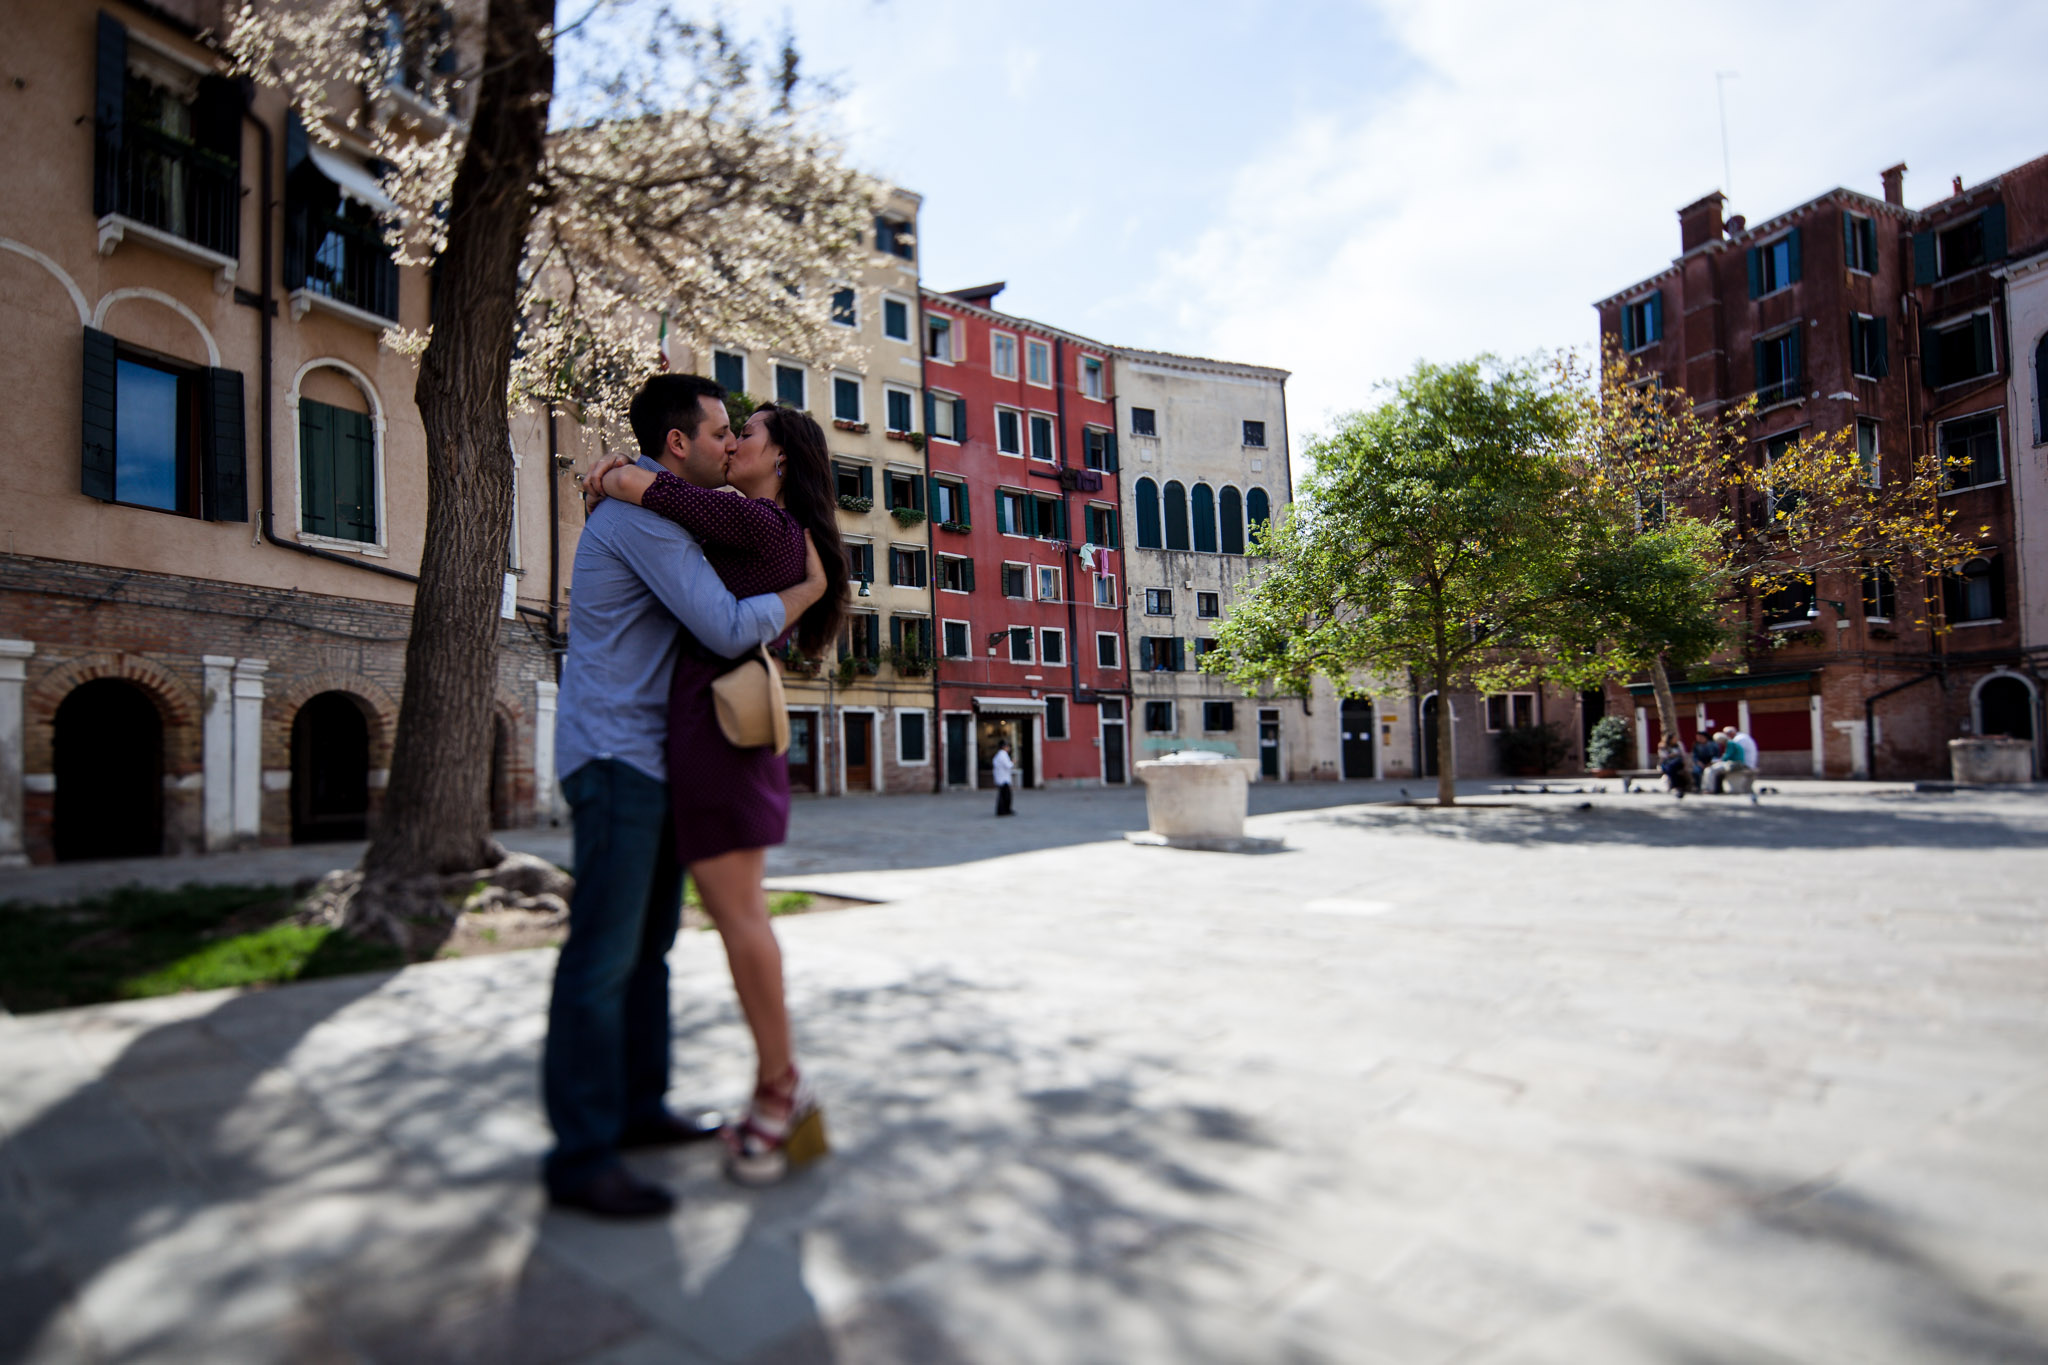 couple hug in square in Venice during honeymoon photo service